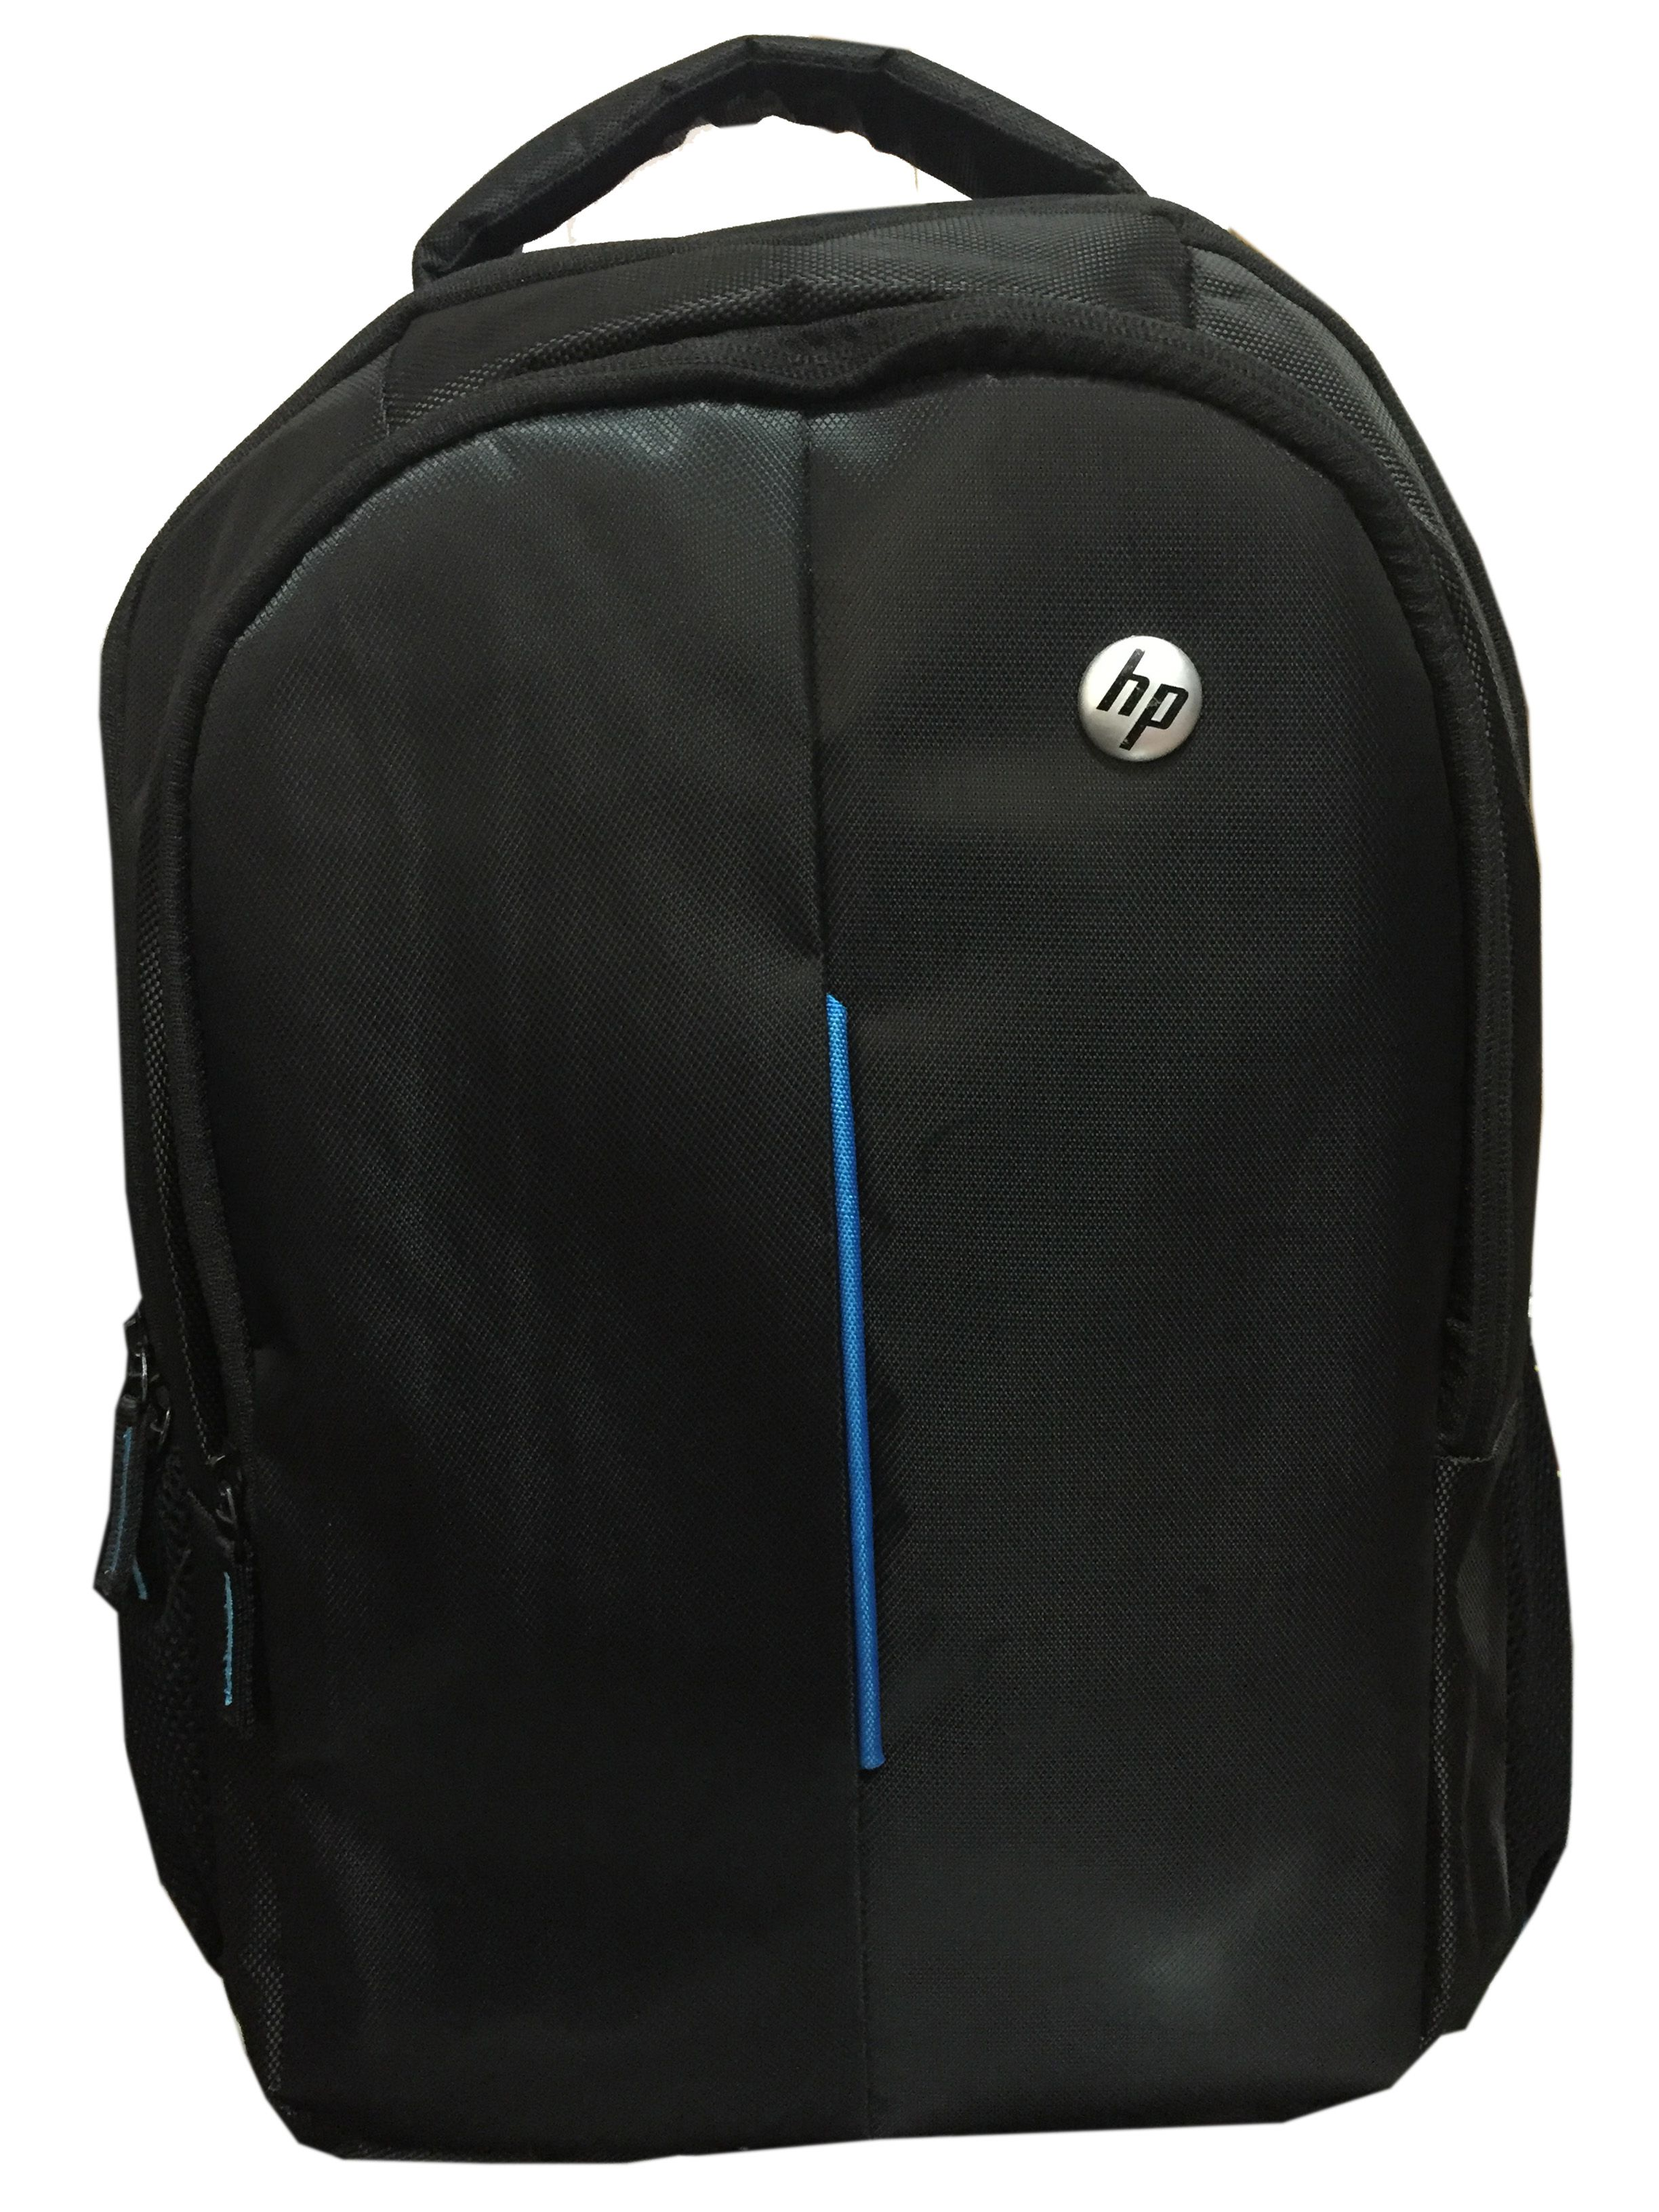 HP Laptop Bags: Buy HP Backpacks Online @ Best Prices | Snapdeal